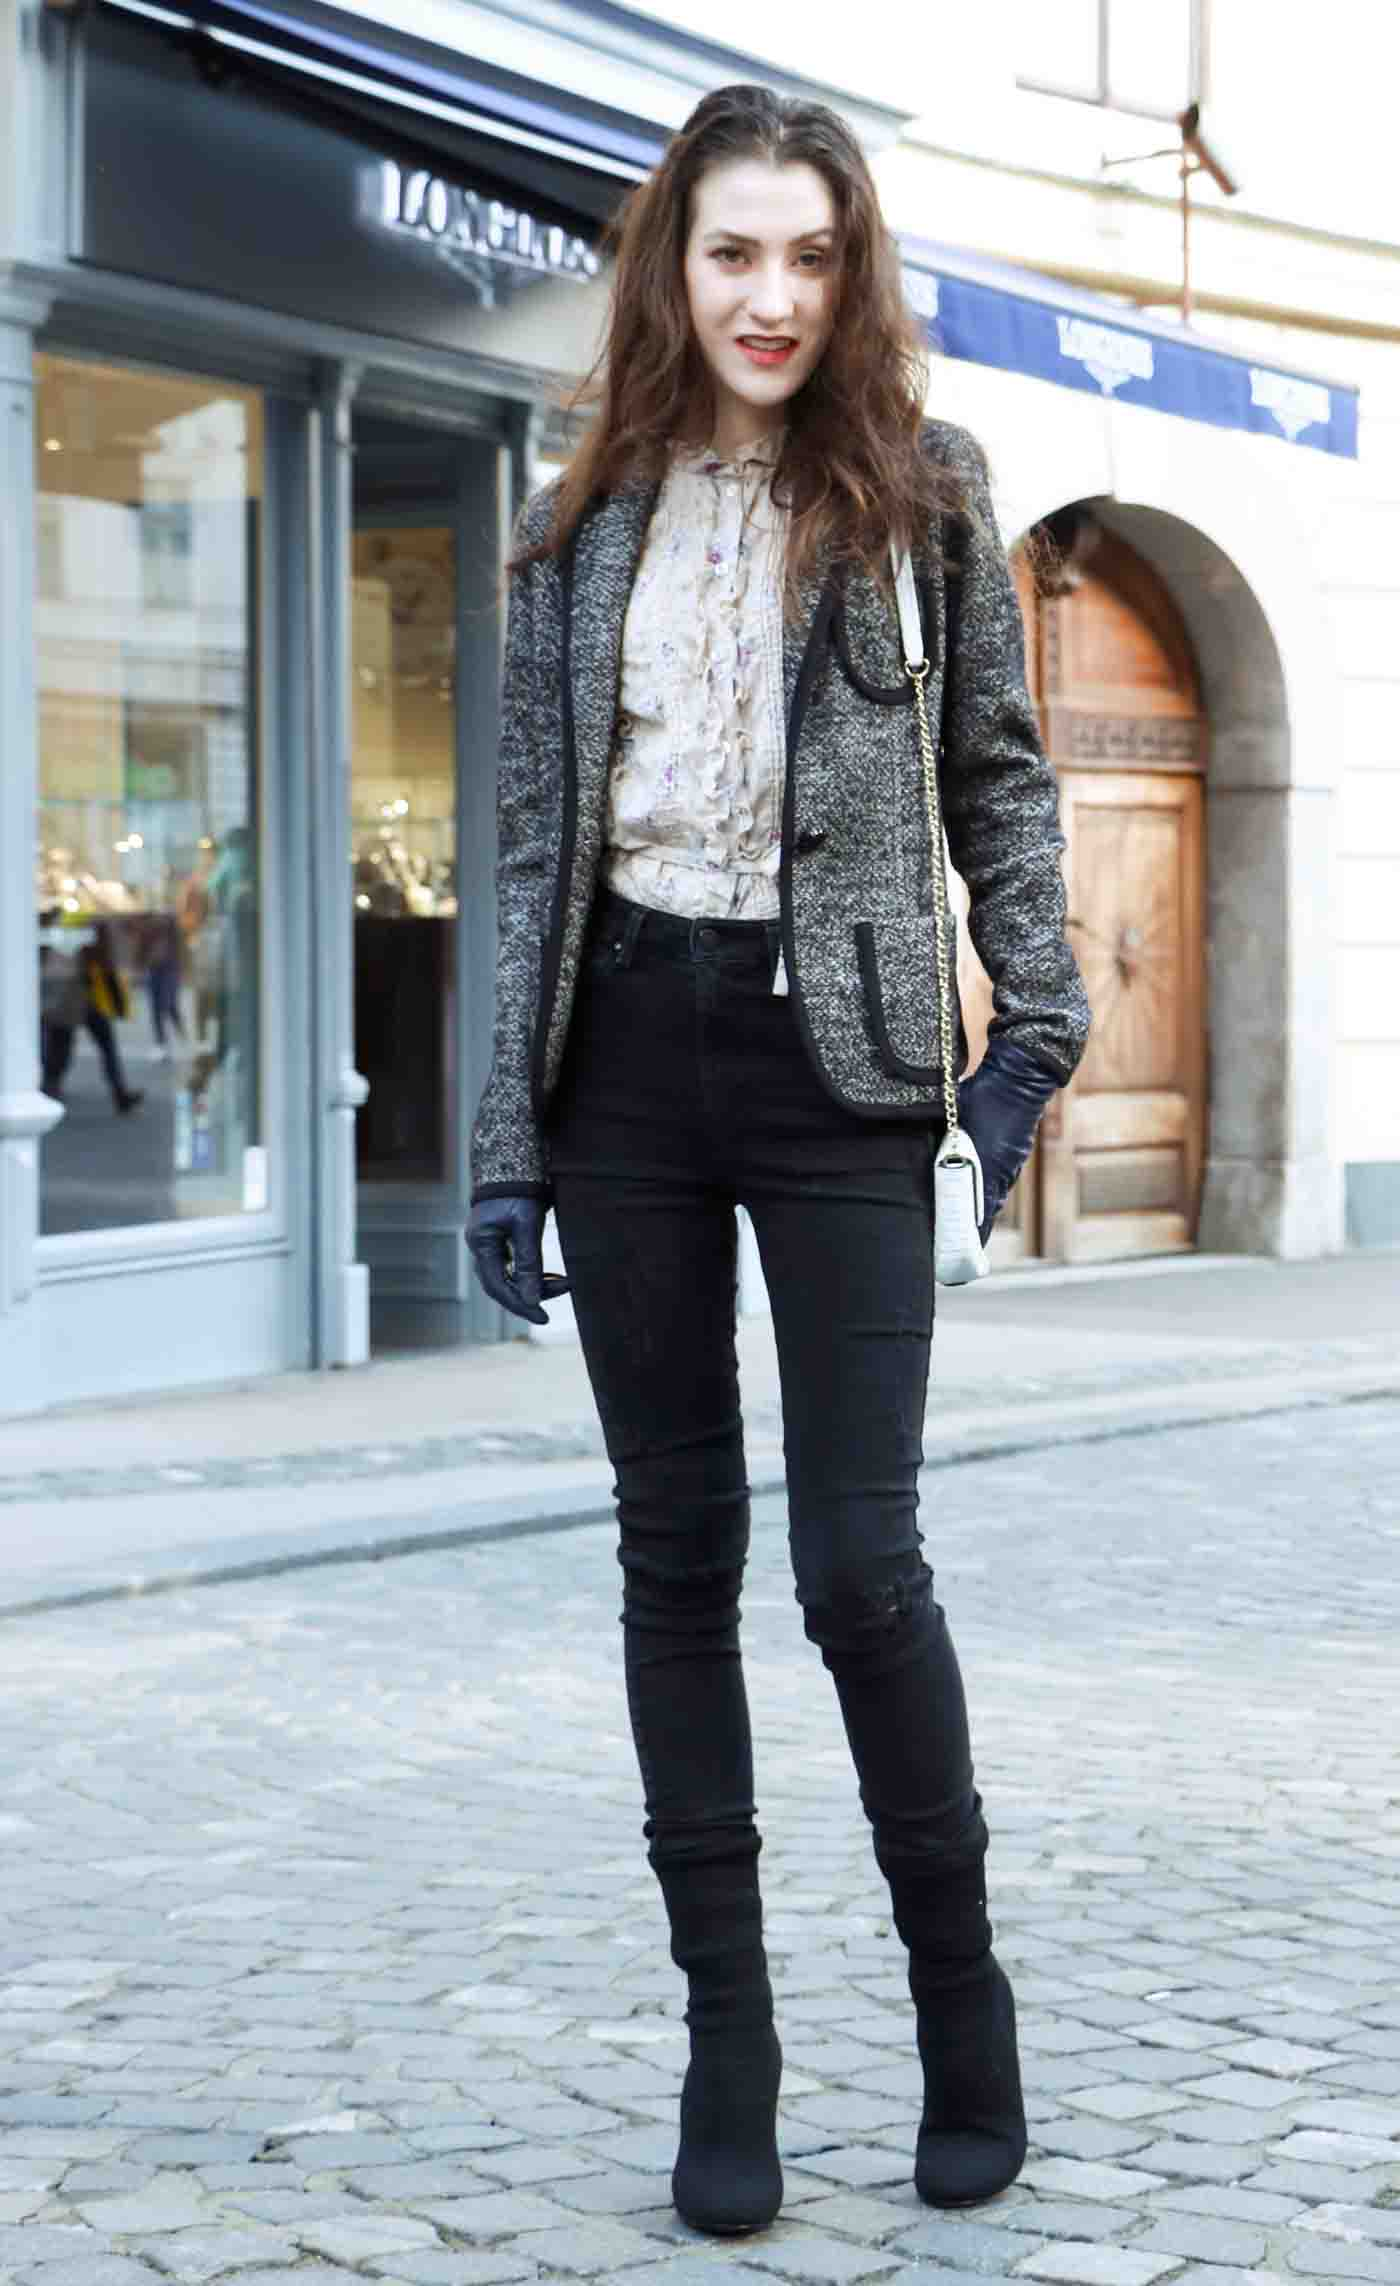 Fashion Blogger Veronika Lipar of Brunette from Wall wearing distressed black skinny jeans, black sock boots and floral high collar blouse under tweed black and white blazer